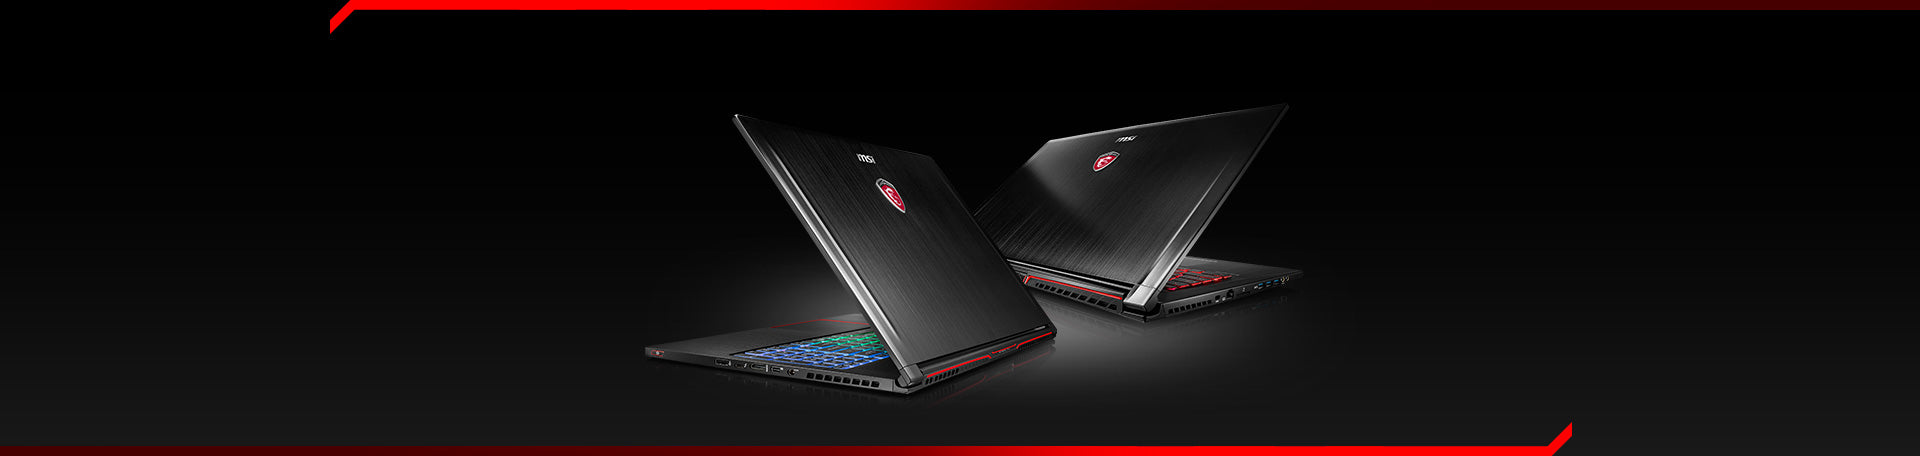 MSI N17 GS Laptops